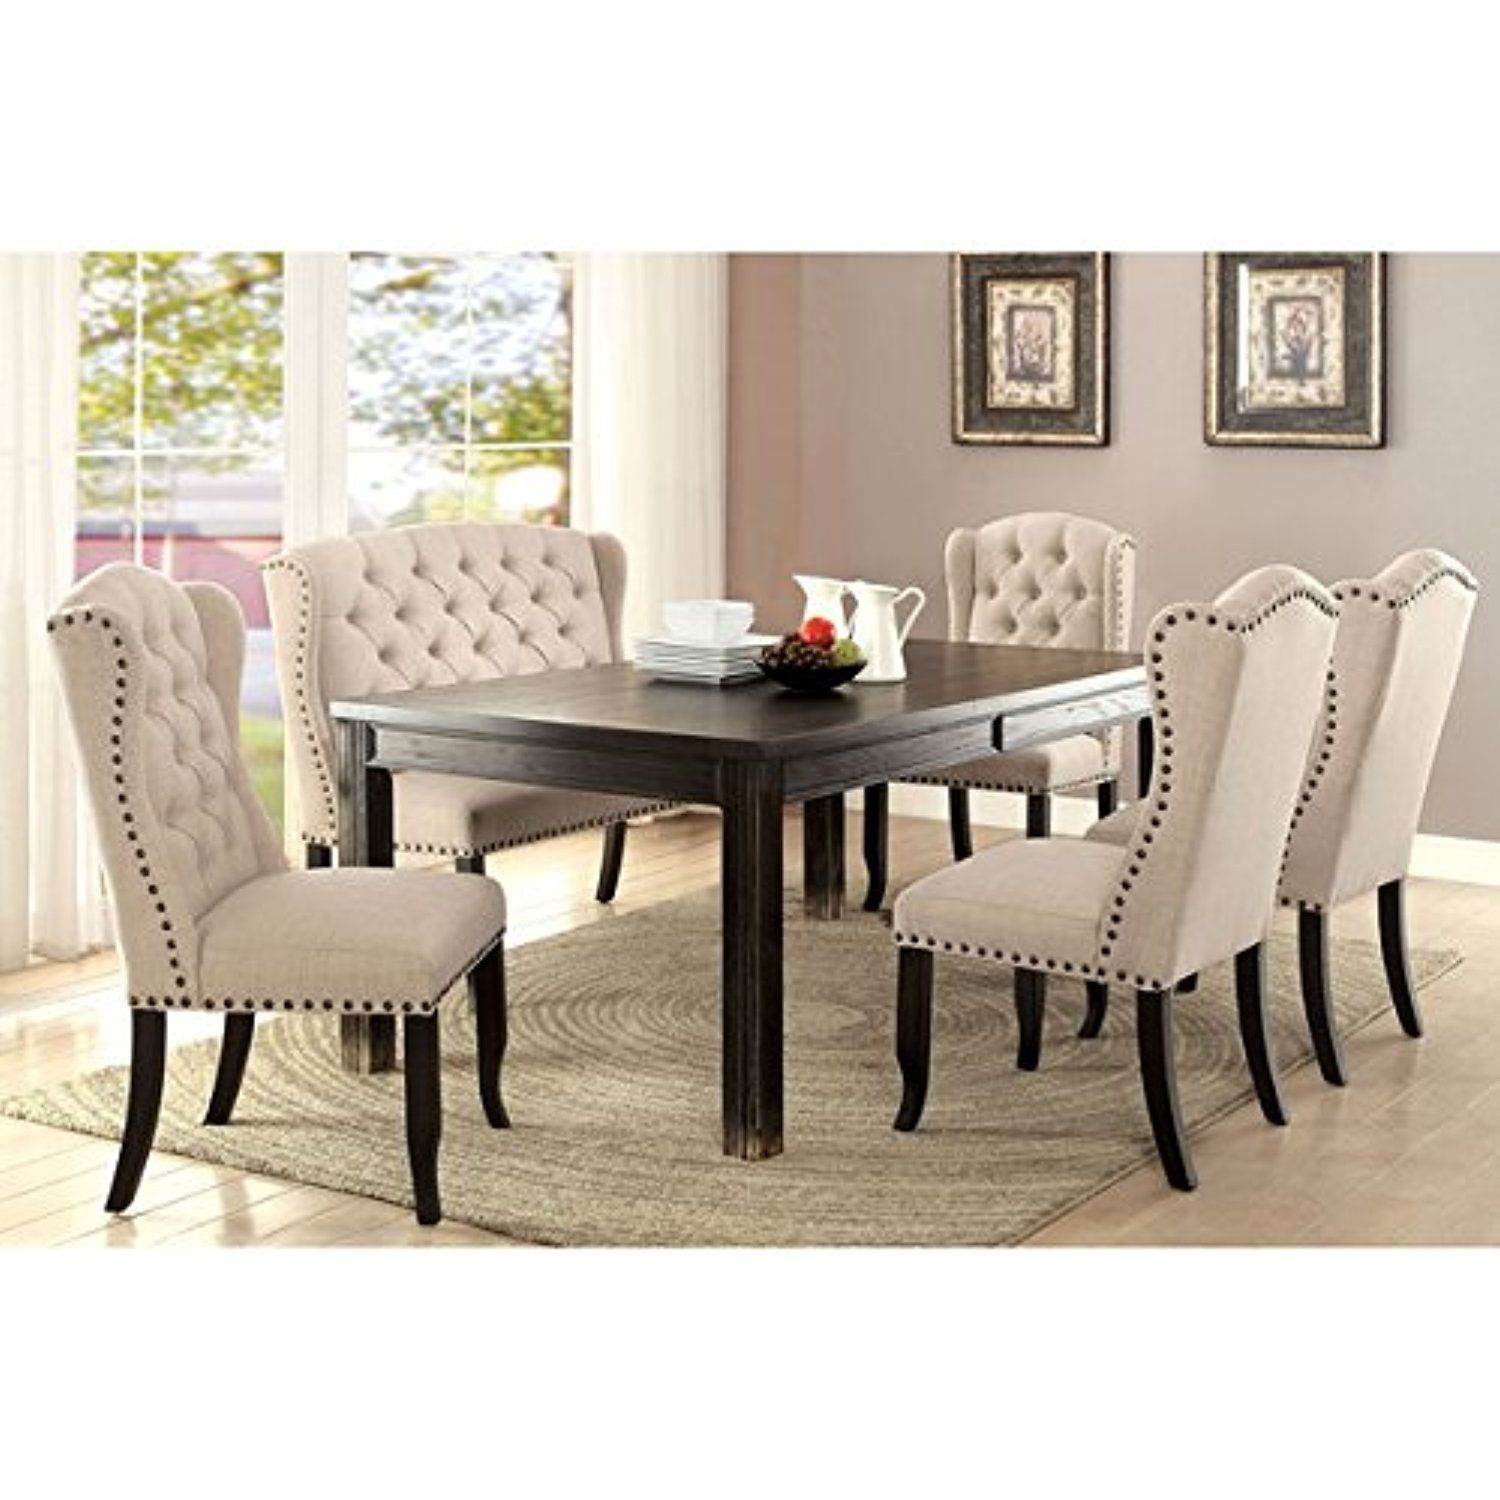 Furniture Of America Telara Contemporary Tufted Wingback Dining Chair Set Of 2 Awesome Produc Dining Table Black Dining Room Sets Upholstered Dining Bench